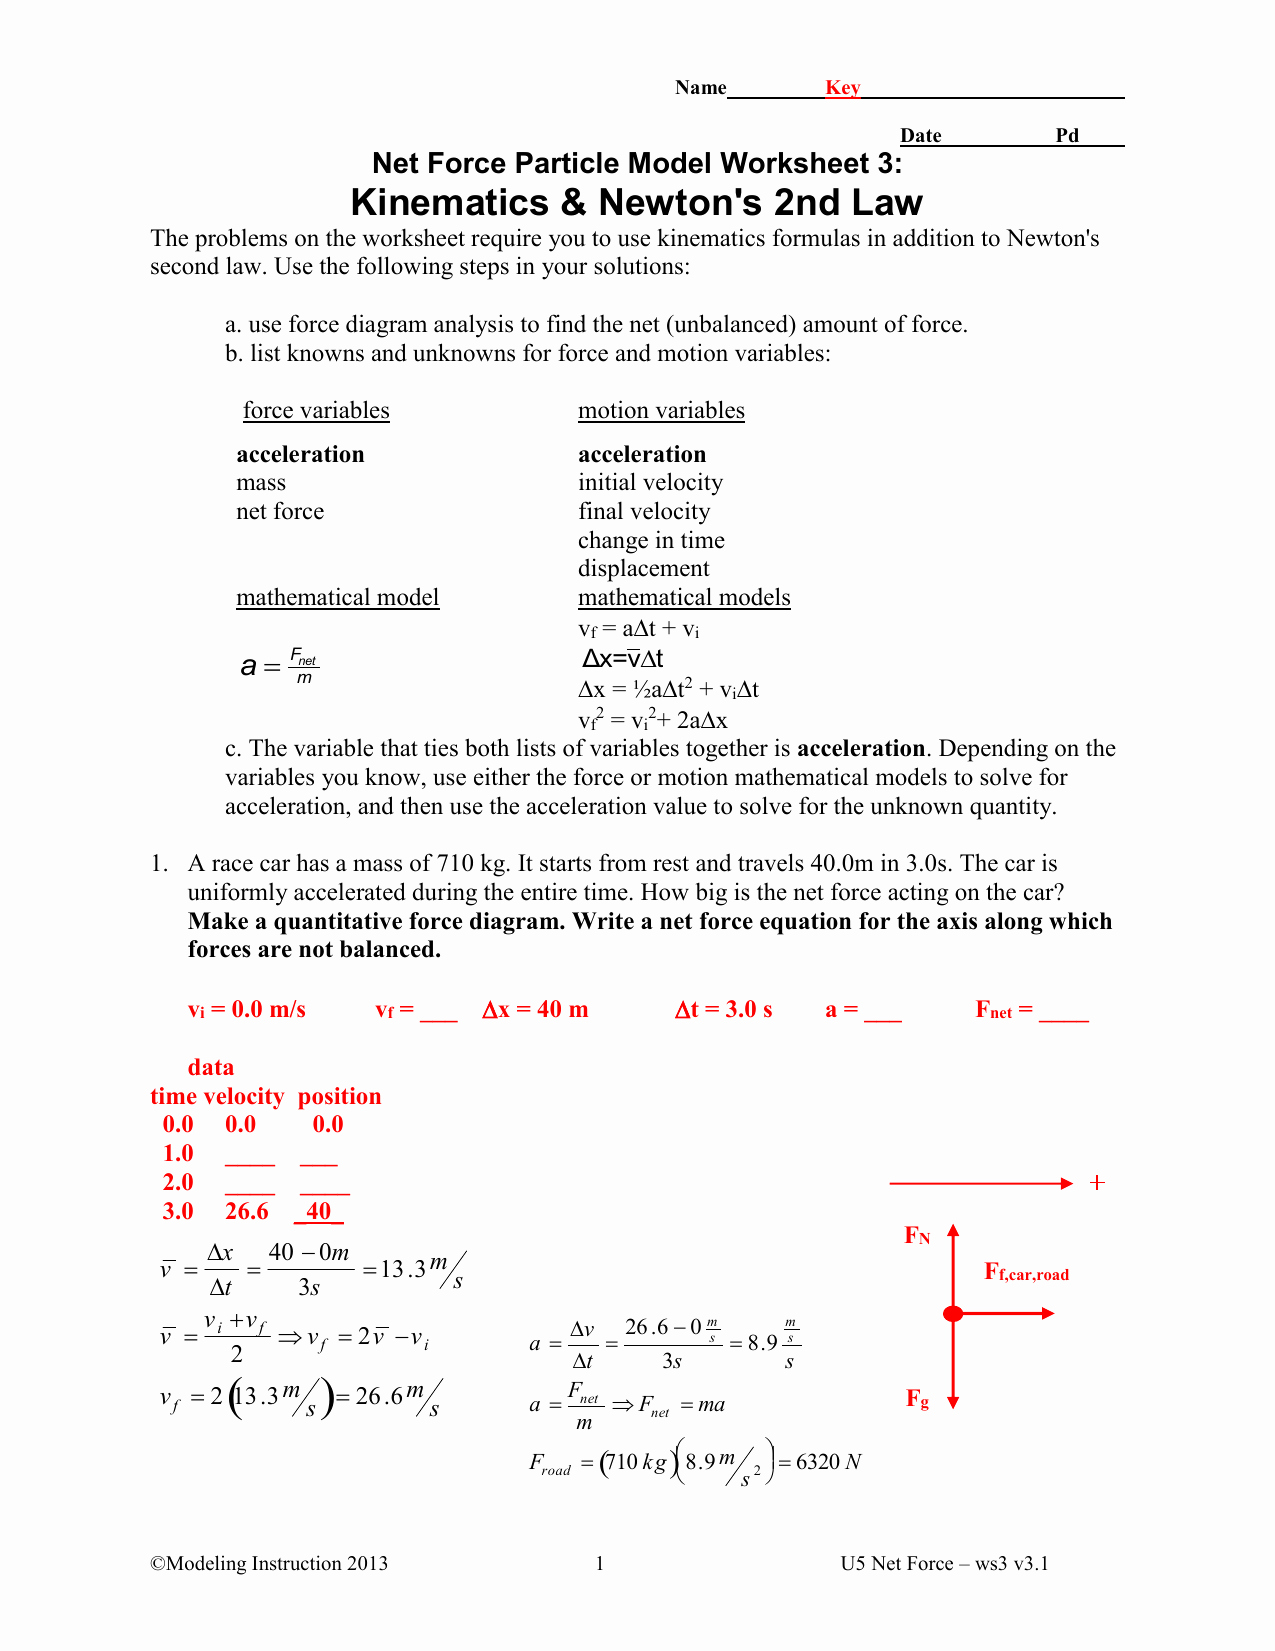 Newton's Second Law Worksheet Answers Beautiful Net force Particle Model Worksheet 5 Newton S Second Law